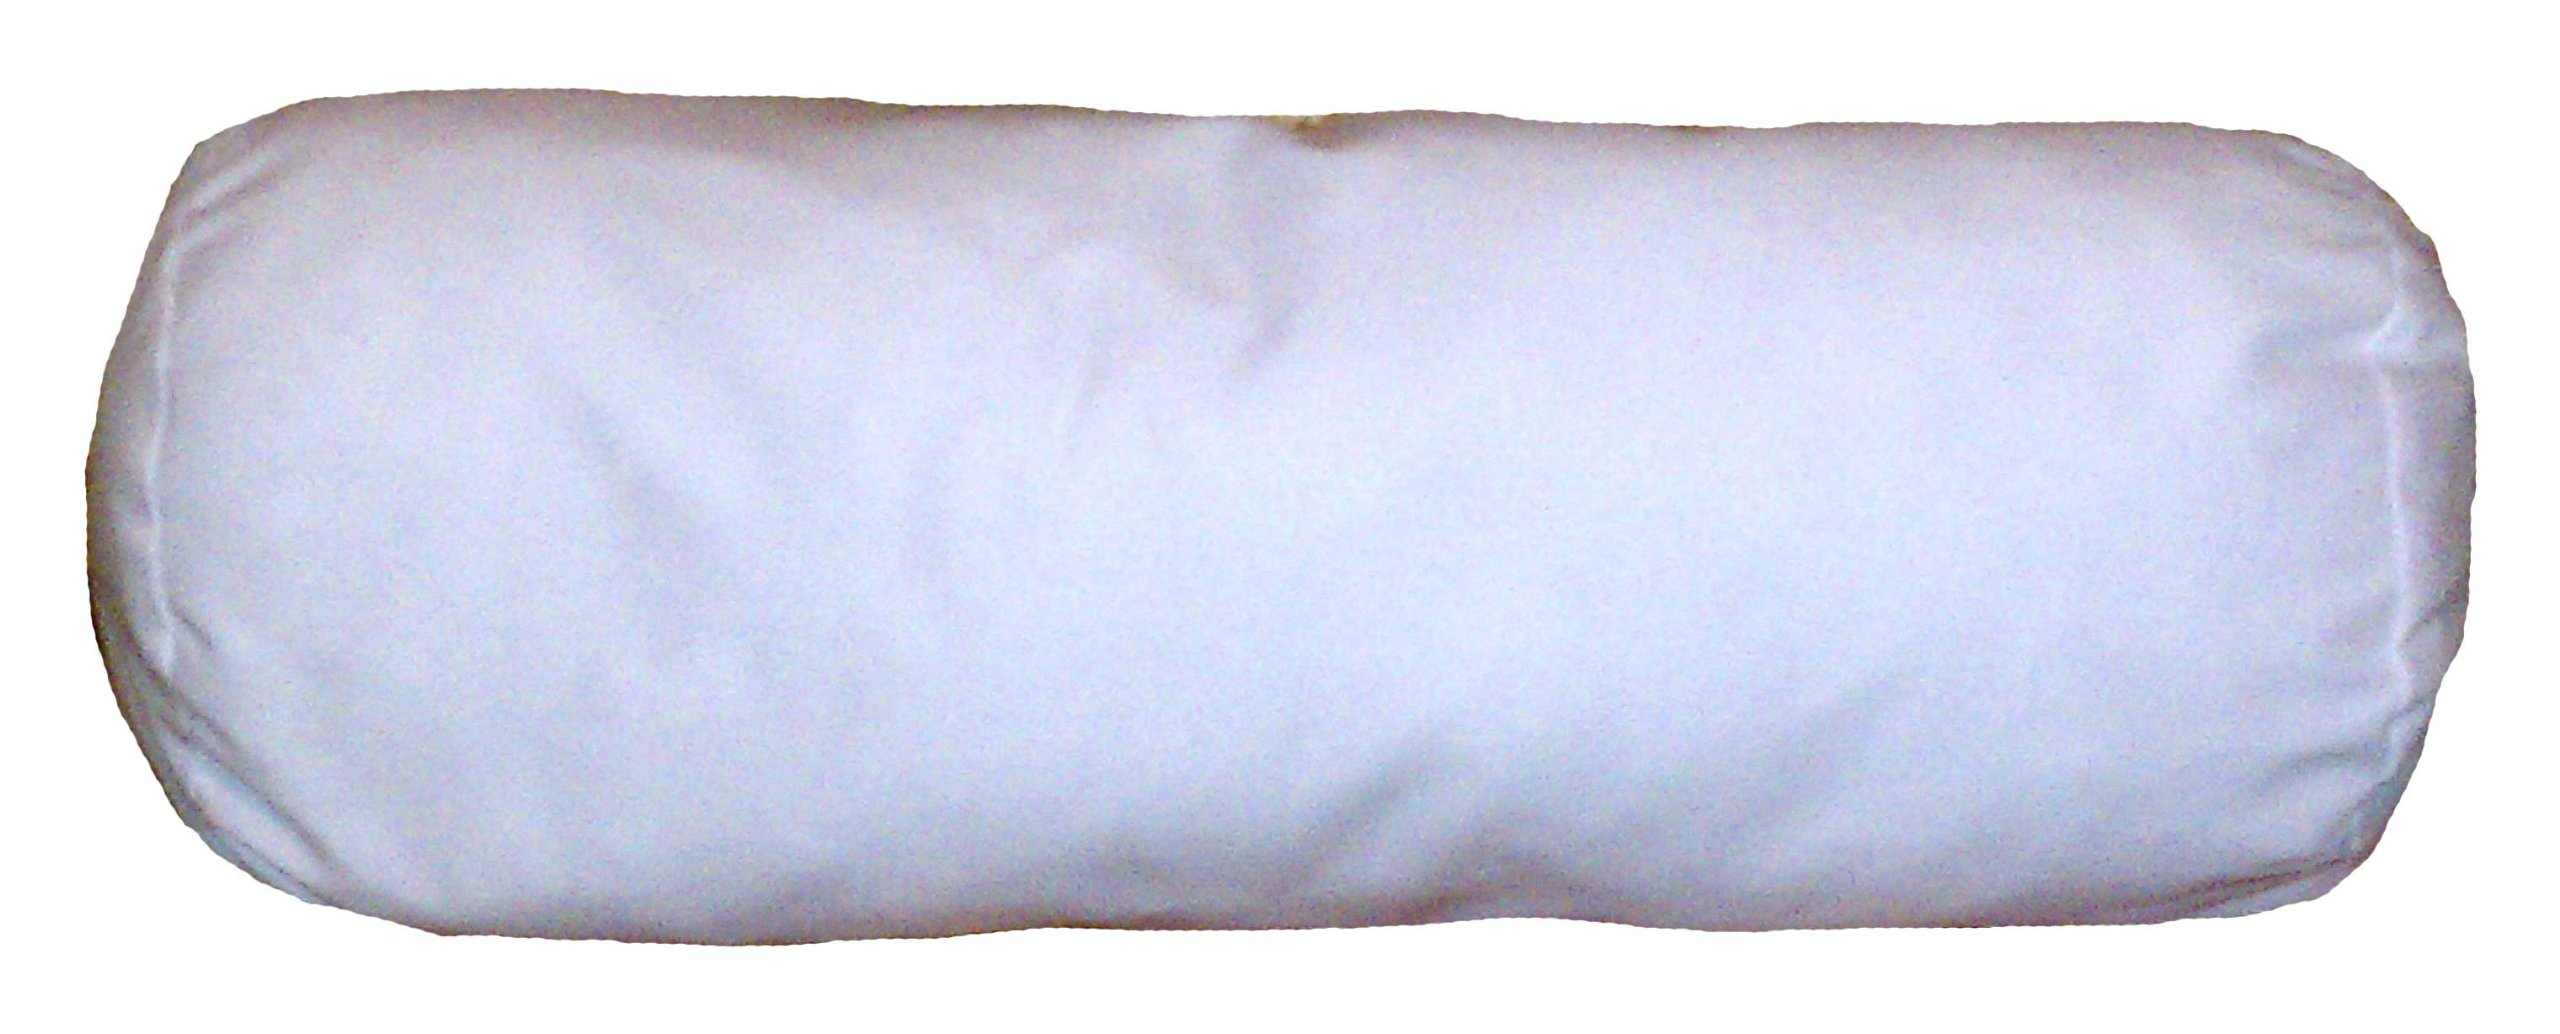 18x60 Inch Bolster Cylindrical Pillow Insert Form by ReynosoHomeDecor